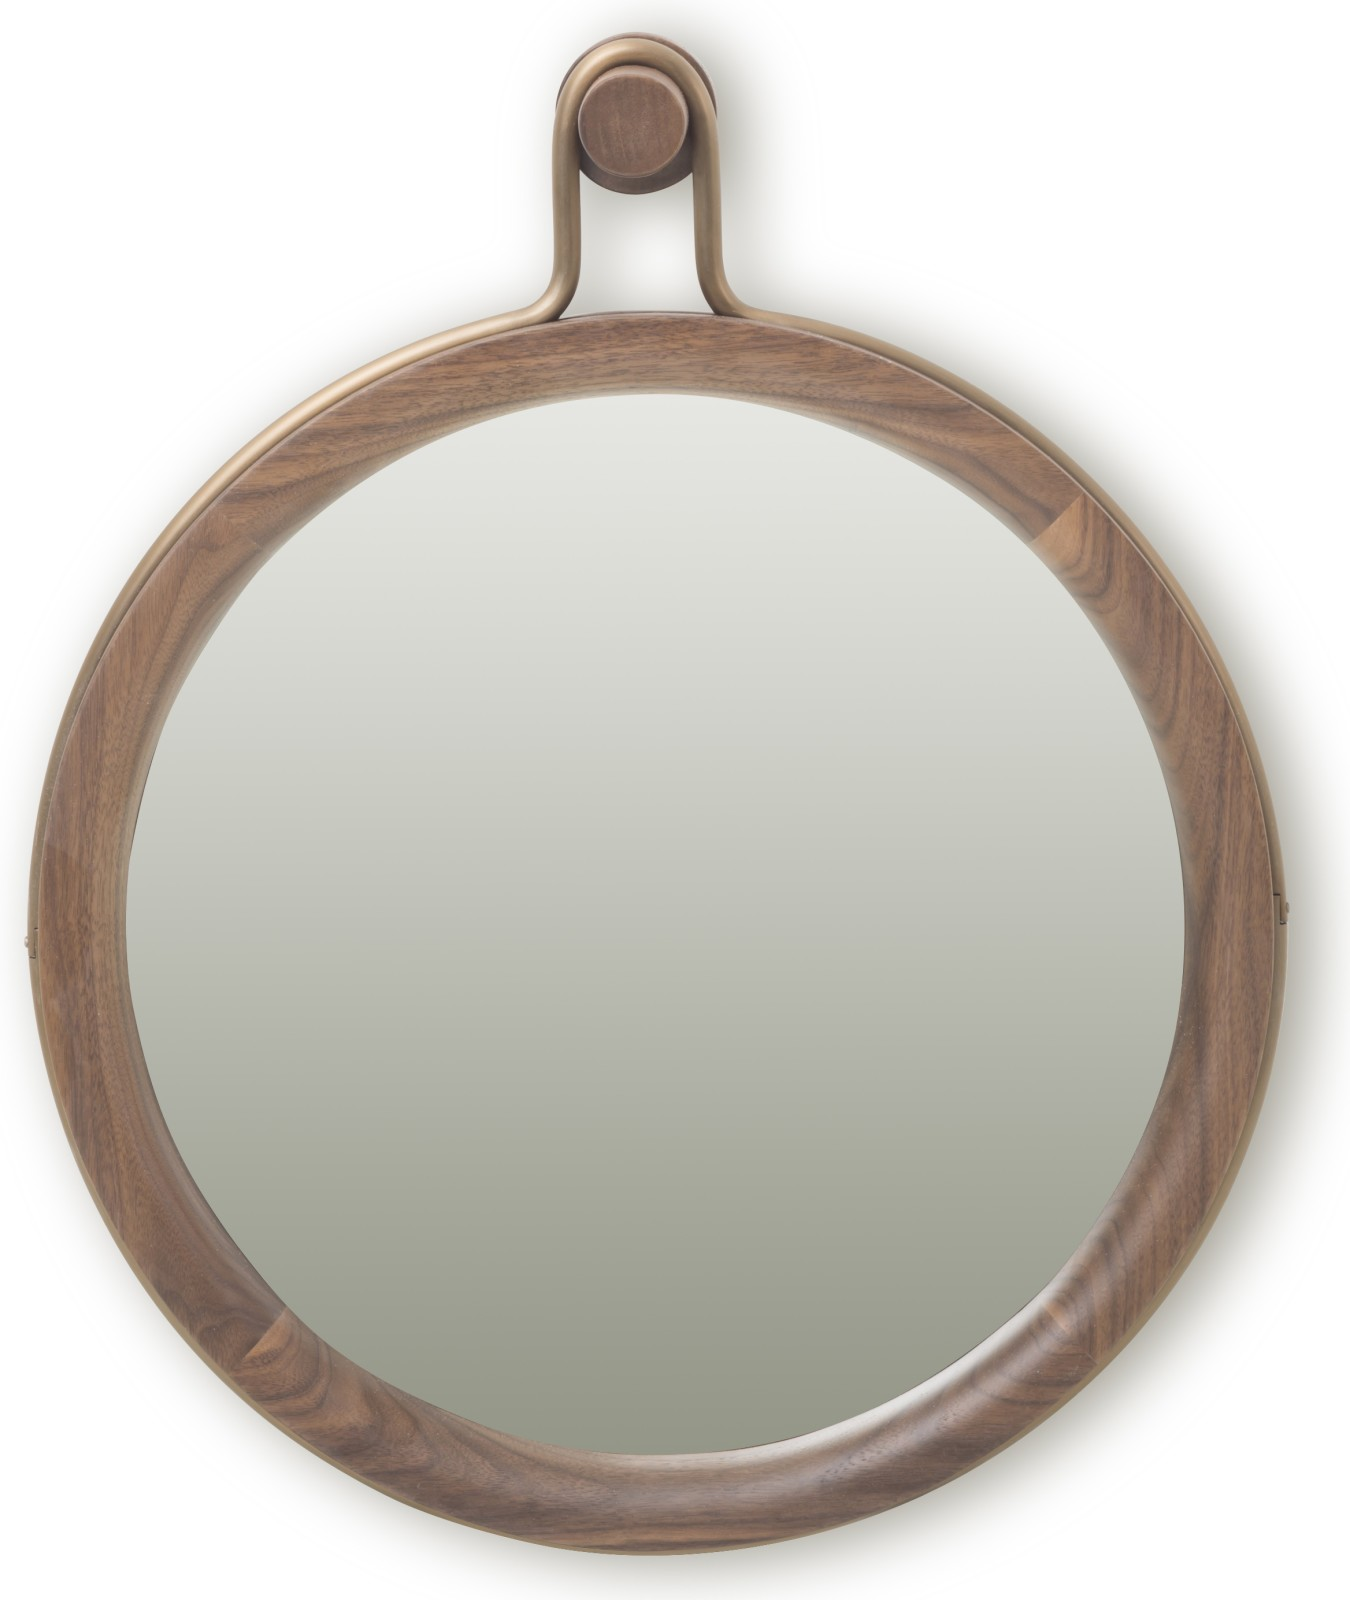 Utility Round Mirror Walnut Brown Stained Ash, Small